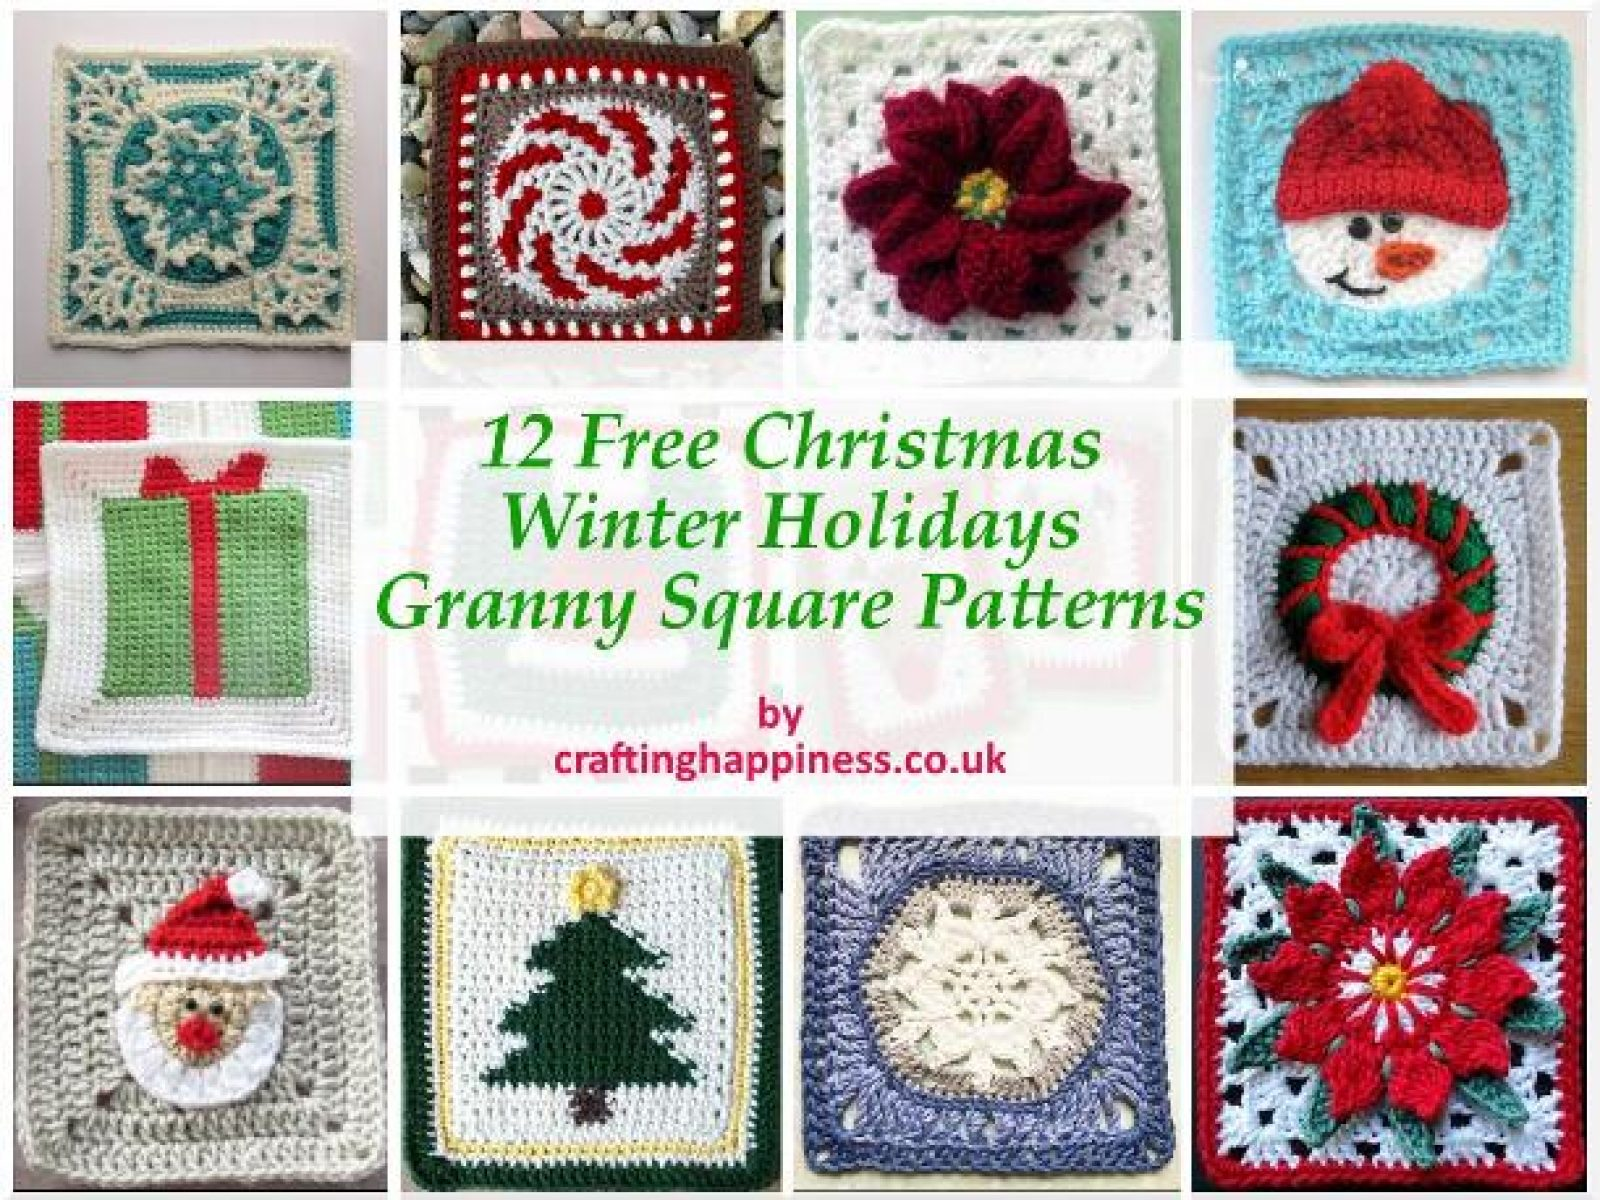 12 Free Christmas Granny Square Patterns